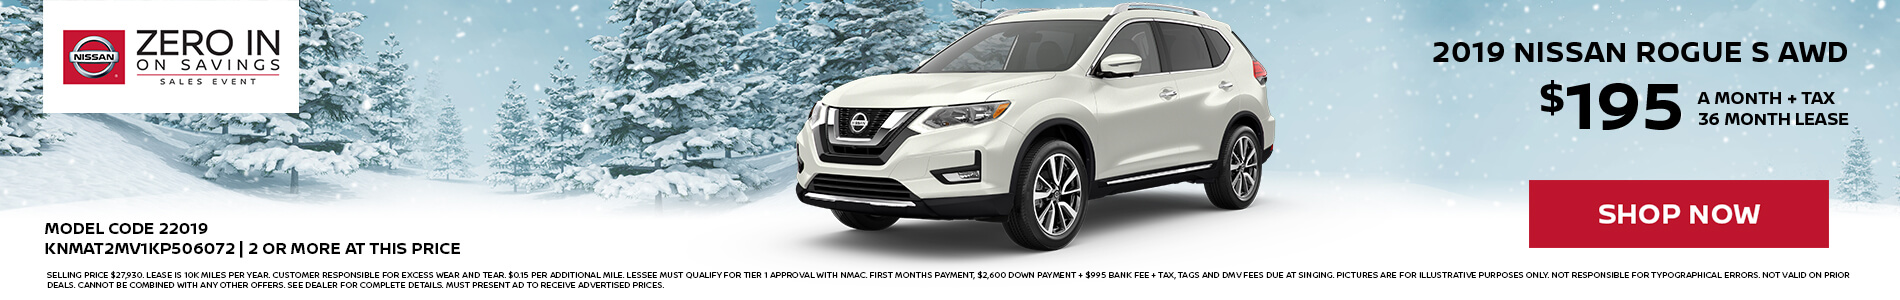 Nissan Rogue $195 Lease